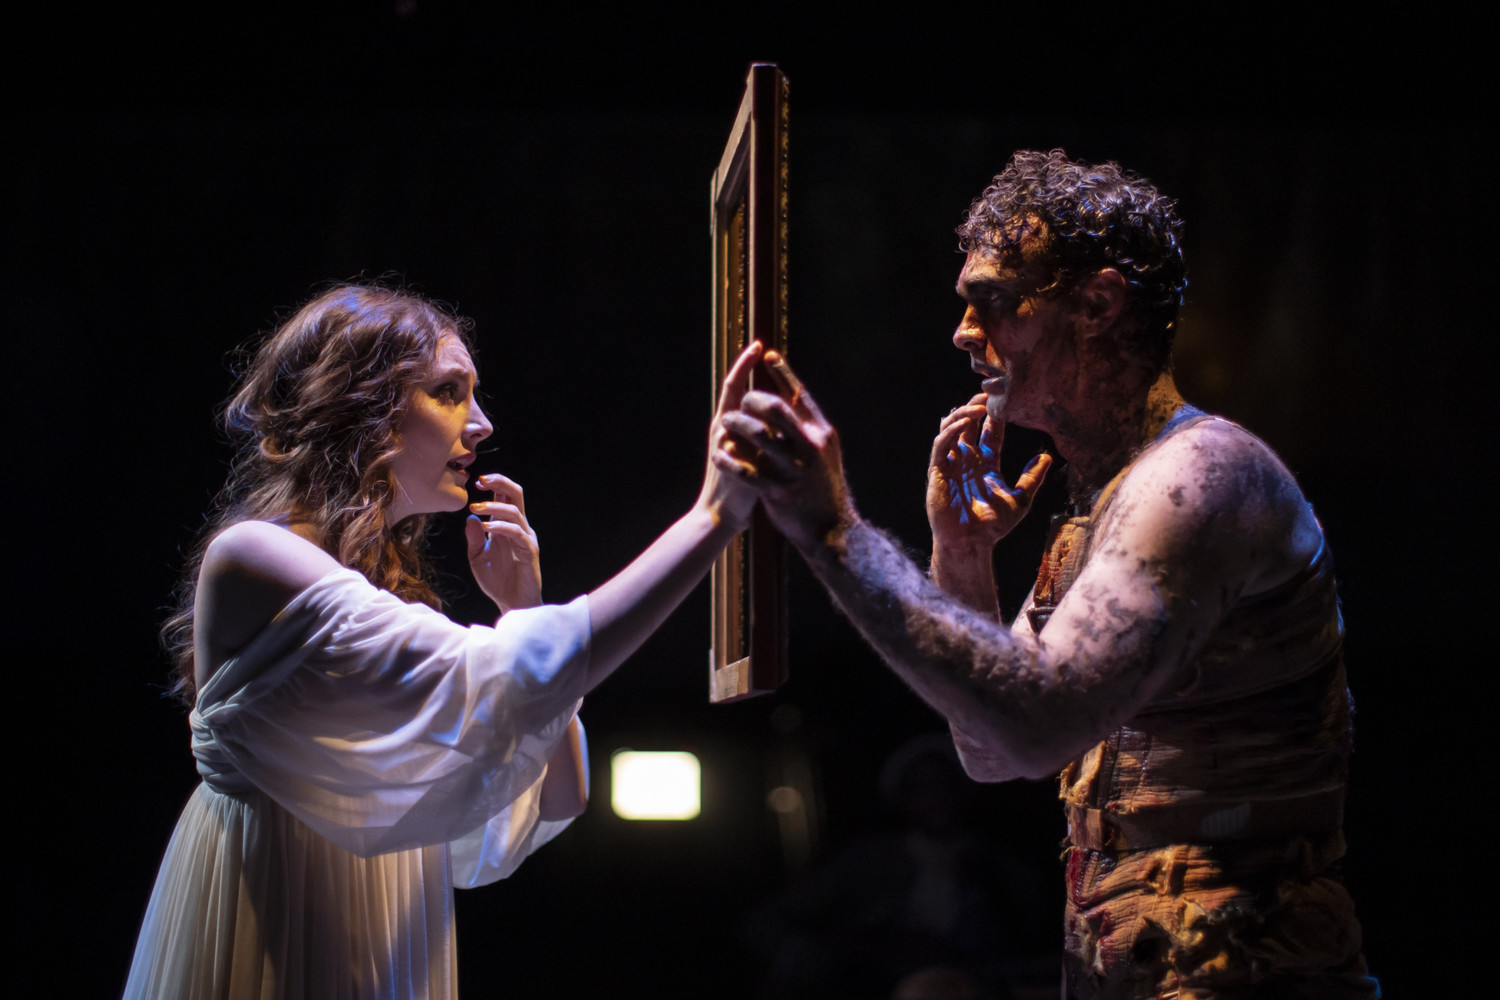 BWW Review: MARY SHELLEY'S FRANKENSTEIN at Lookingglass Theatre Company